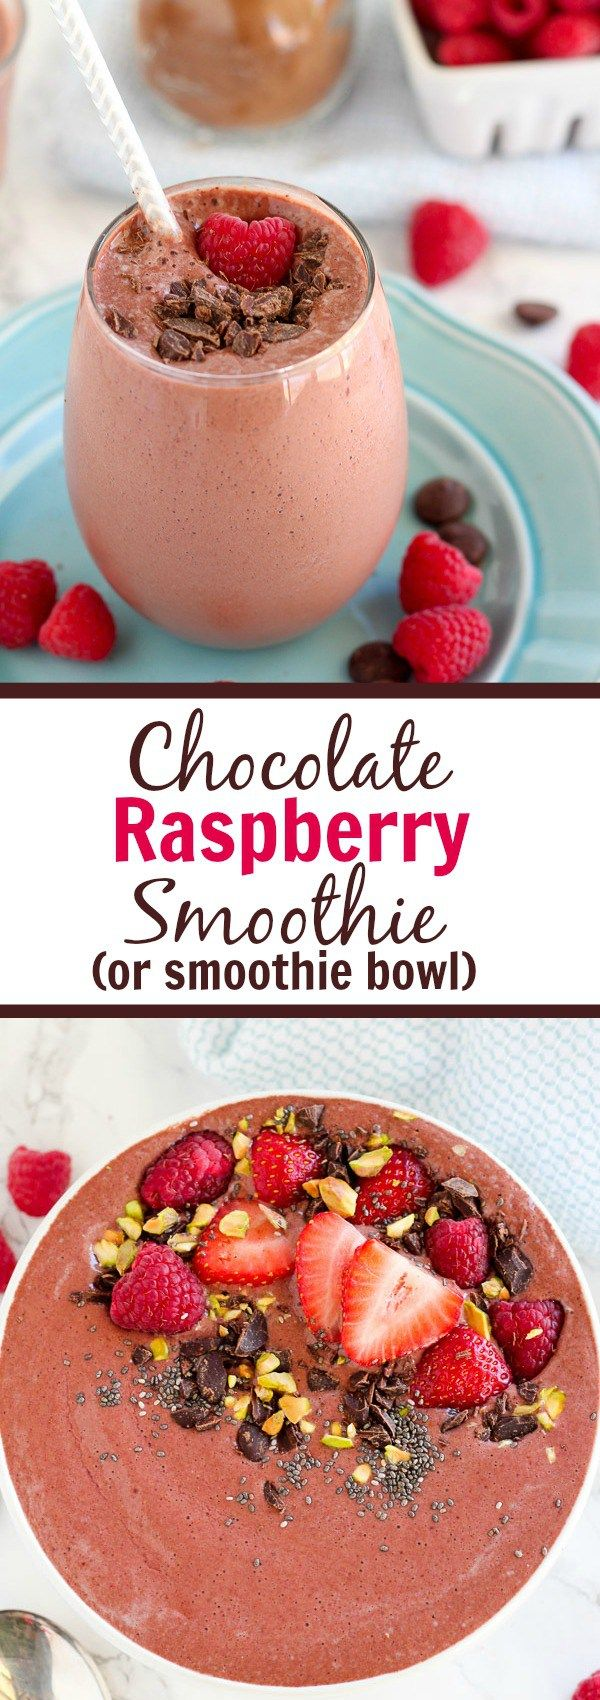 Chocolate Raspberry Smoothie - A lightly sweetened smoothie flavored with chocolate and raspberries. Filled with fruit, protein, and plenty of chocolate, this smoothie can be enjoyed for breakfast or as a healthy dessert. #fruitsmoothie